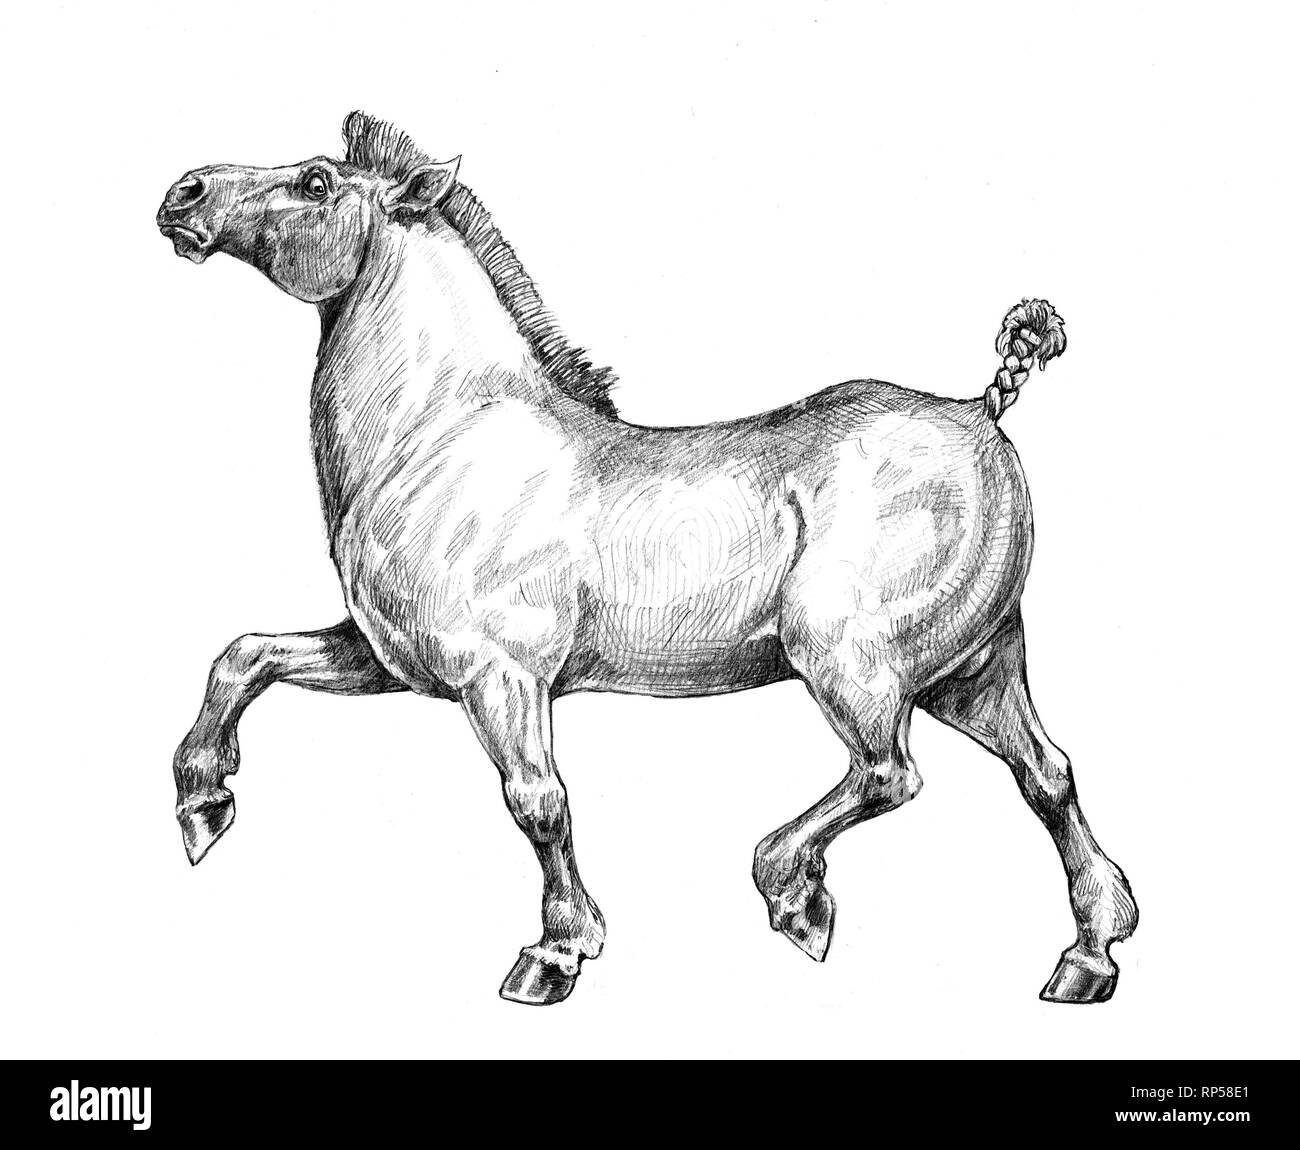 Thick Funny Horse Pencil Drawing Stock Photo Alamy